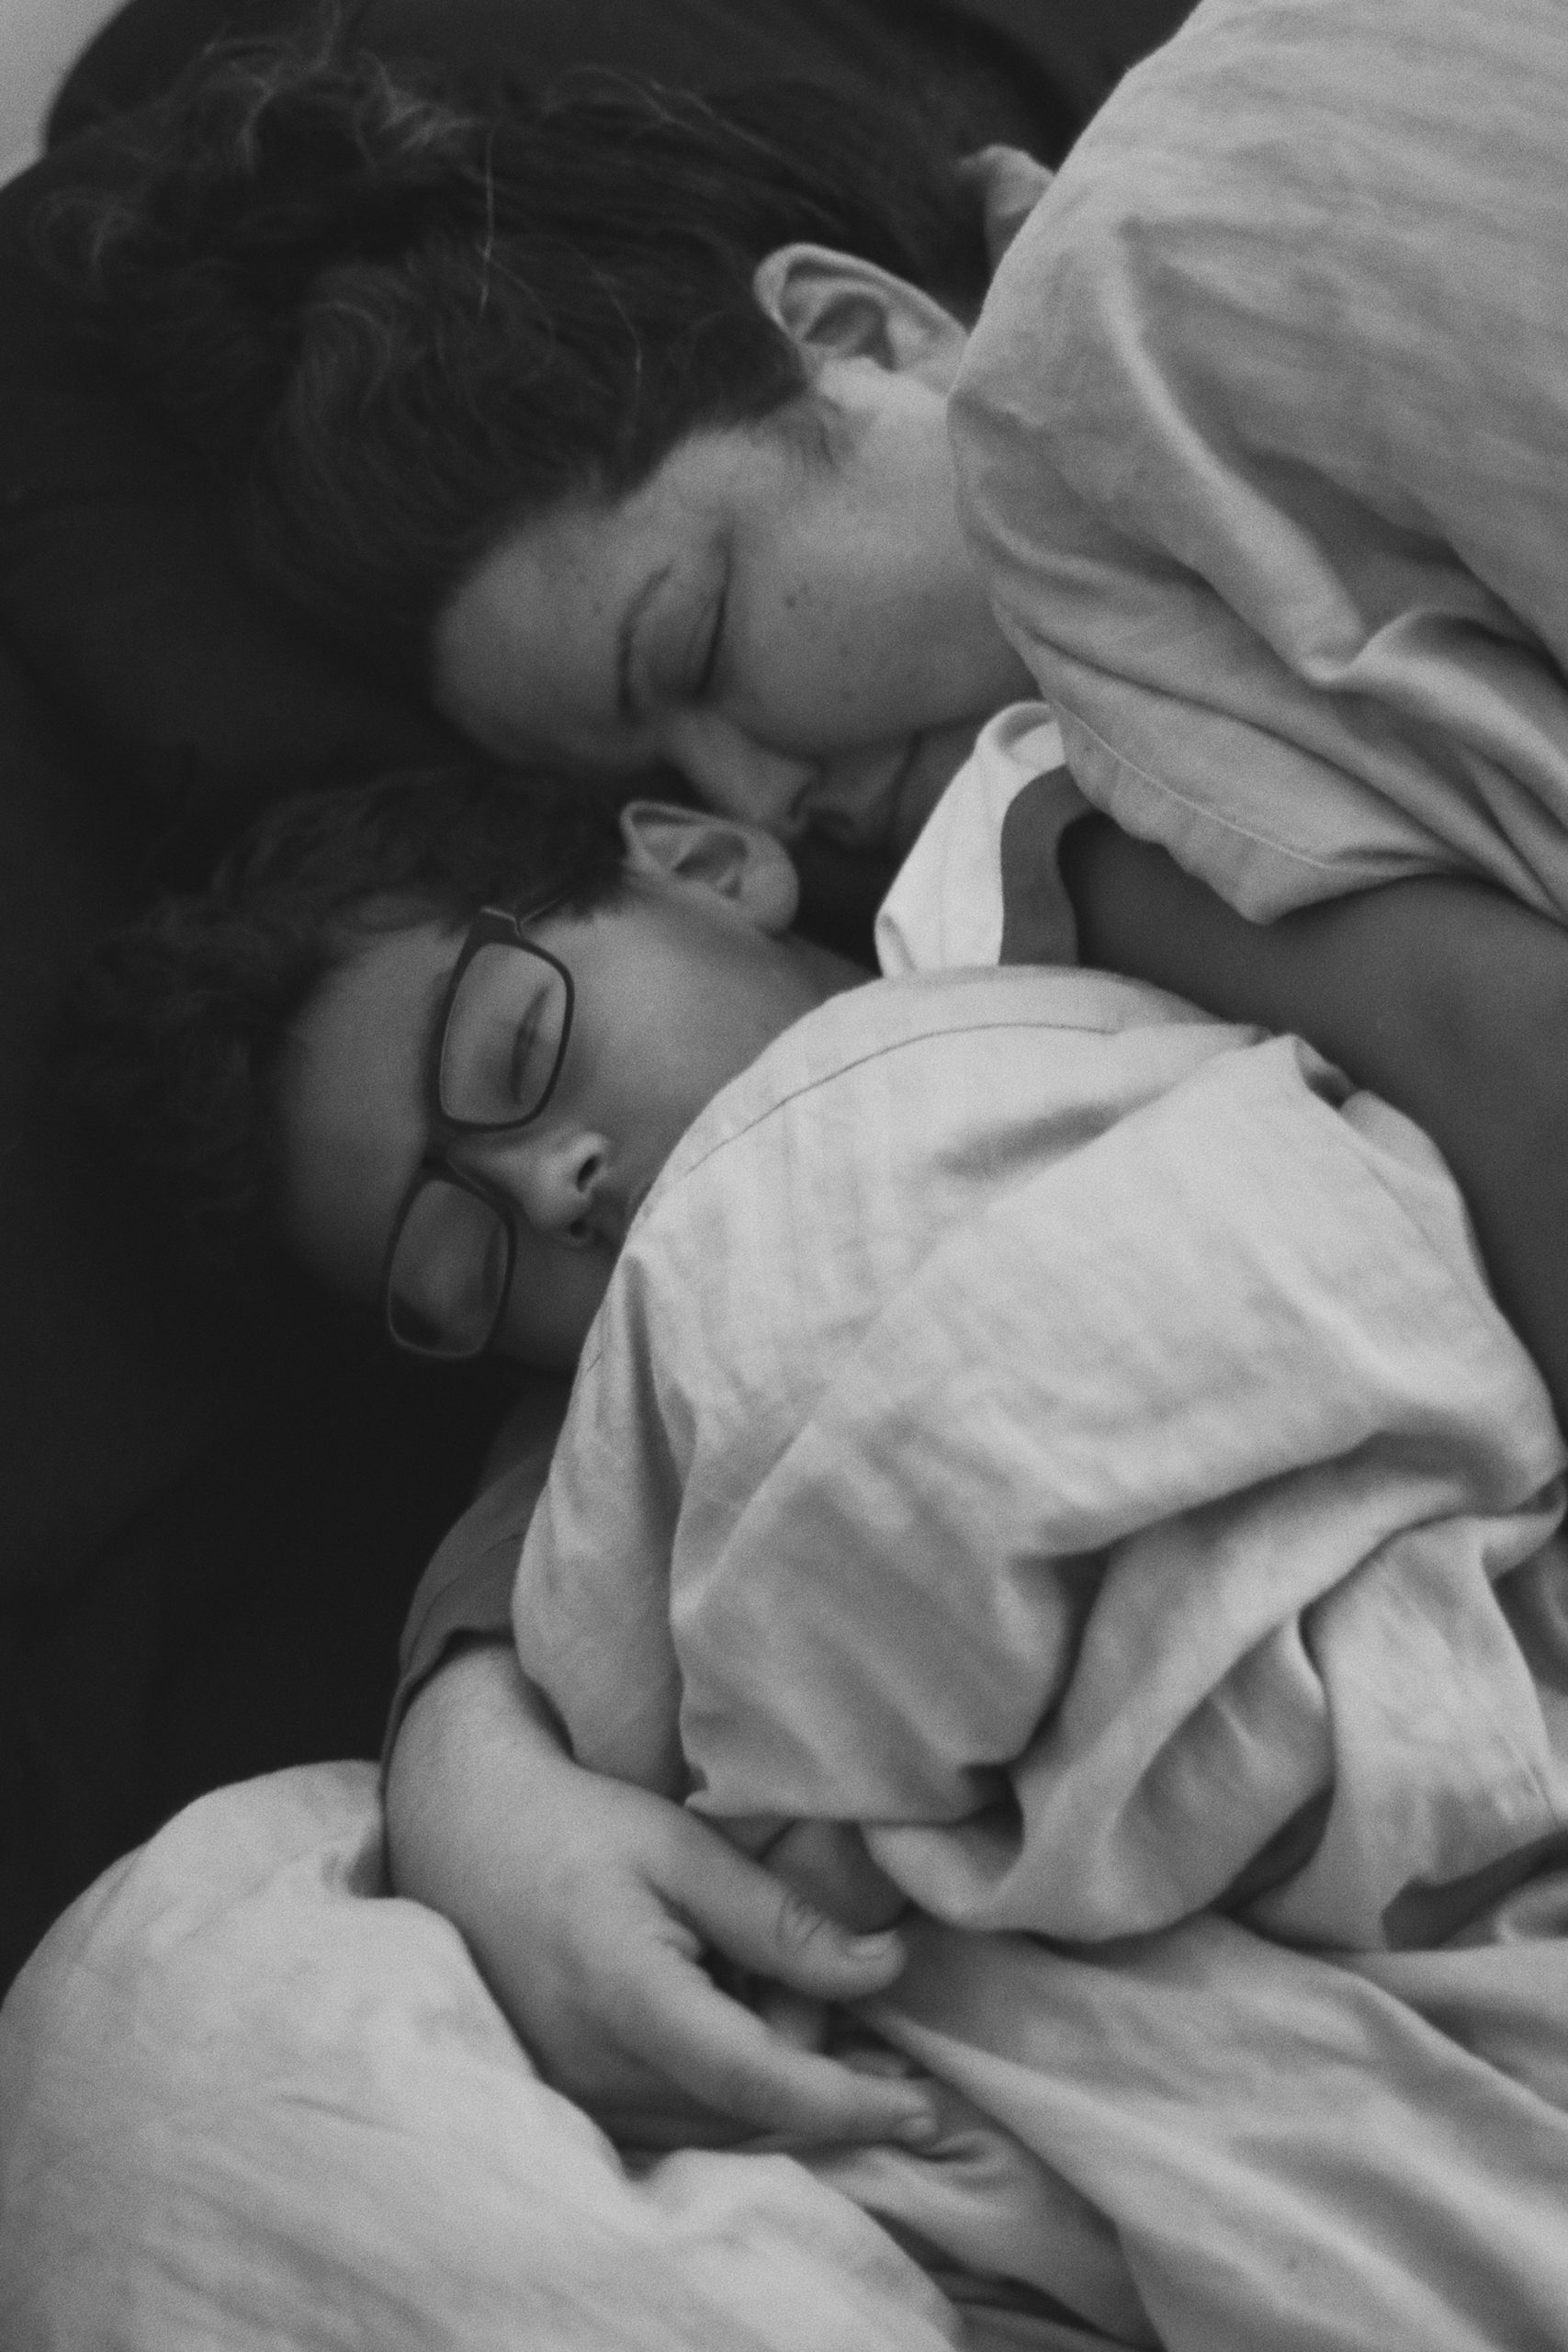 A mom and son, snuggling together, with their eyes closed.